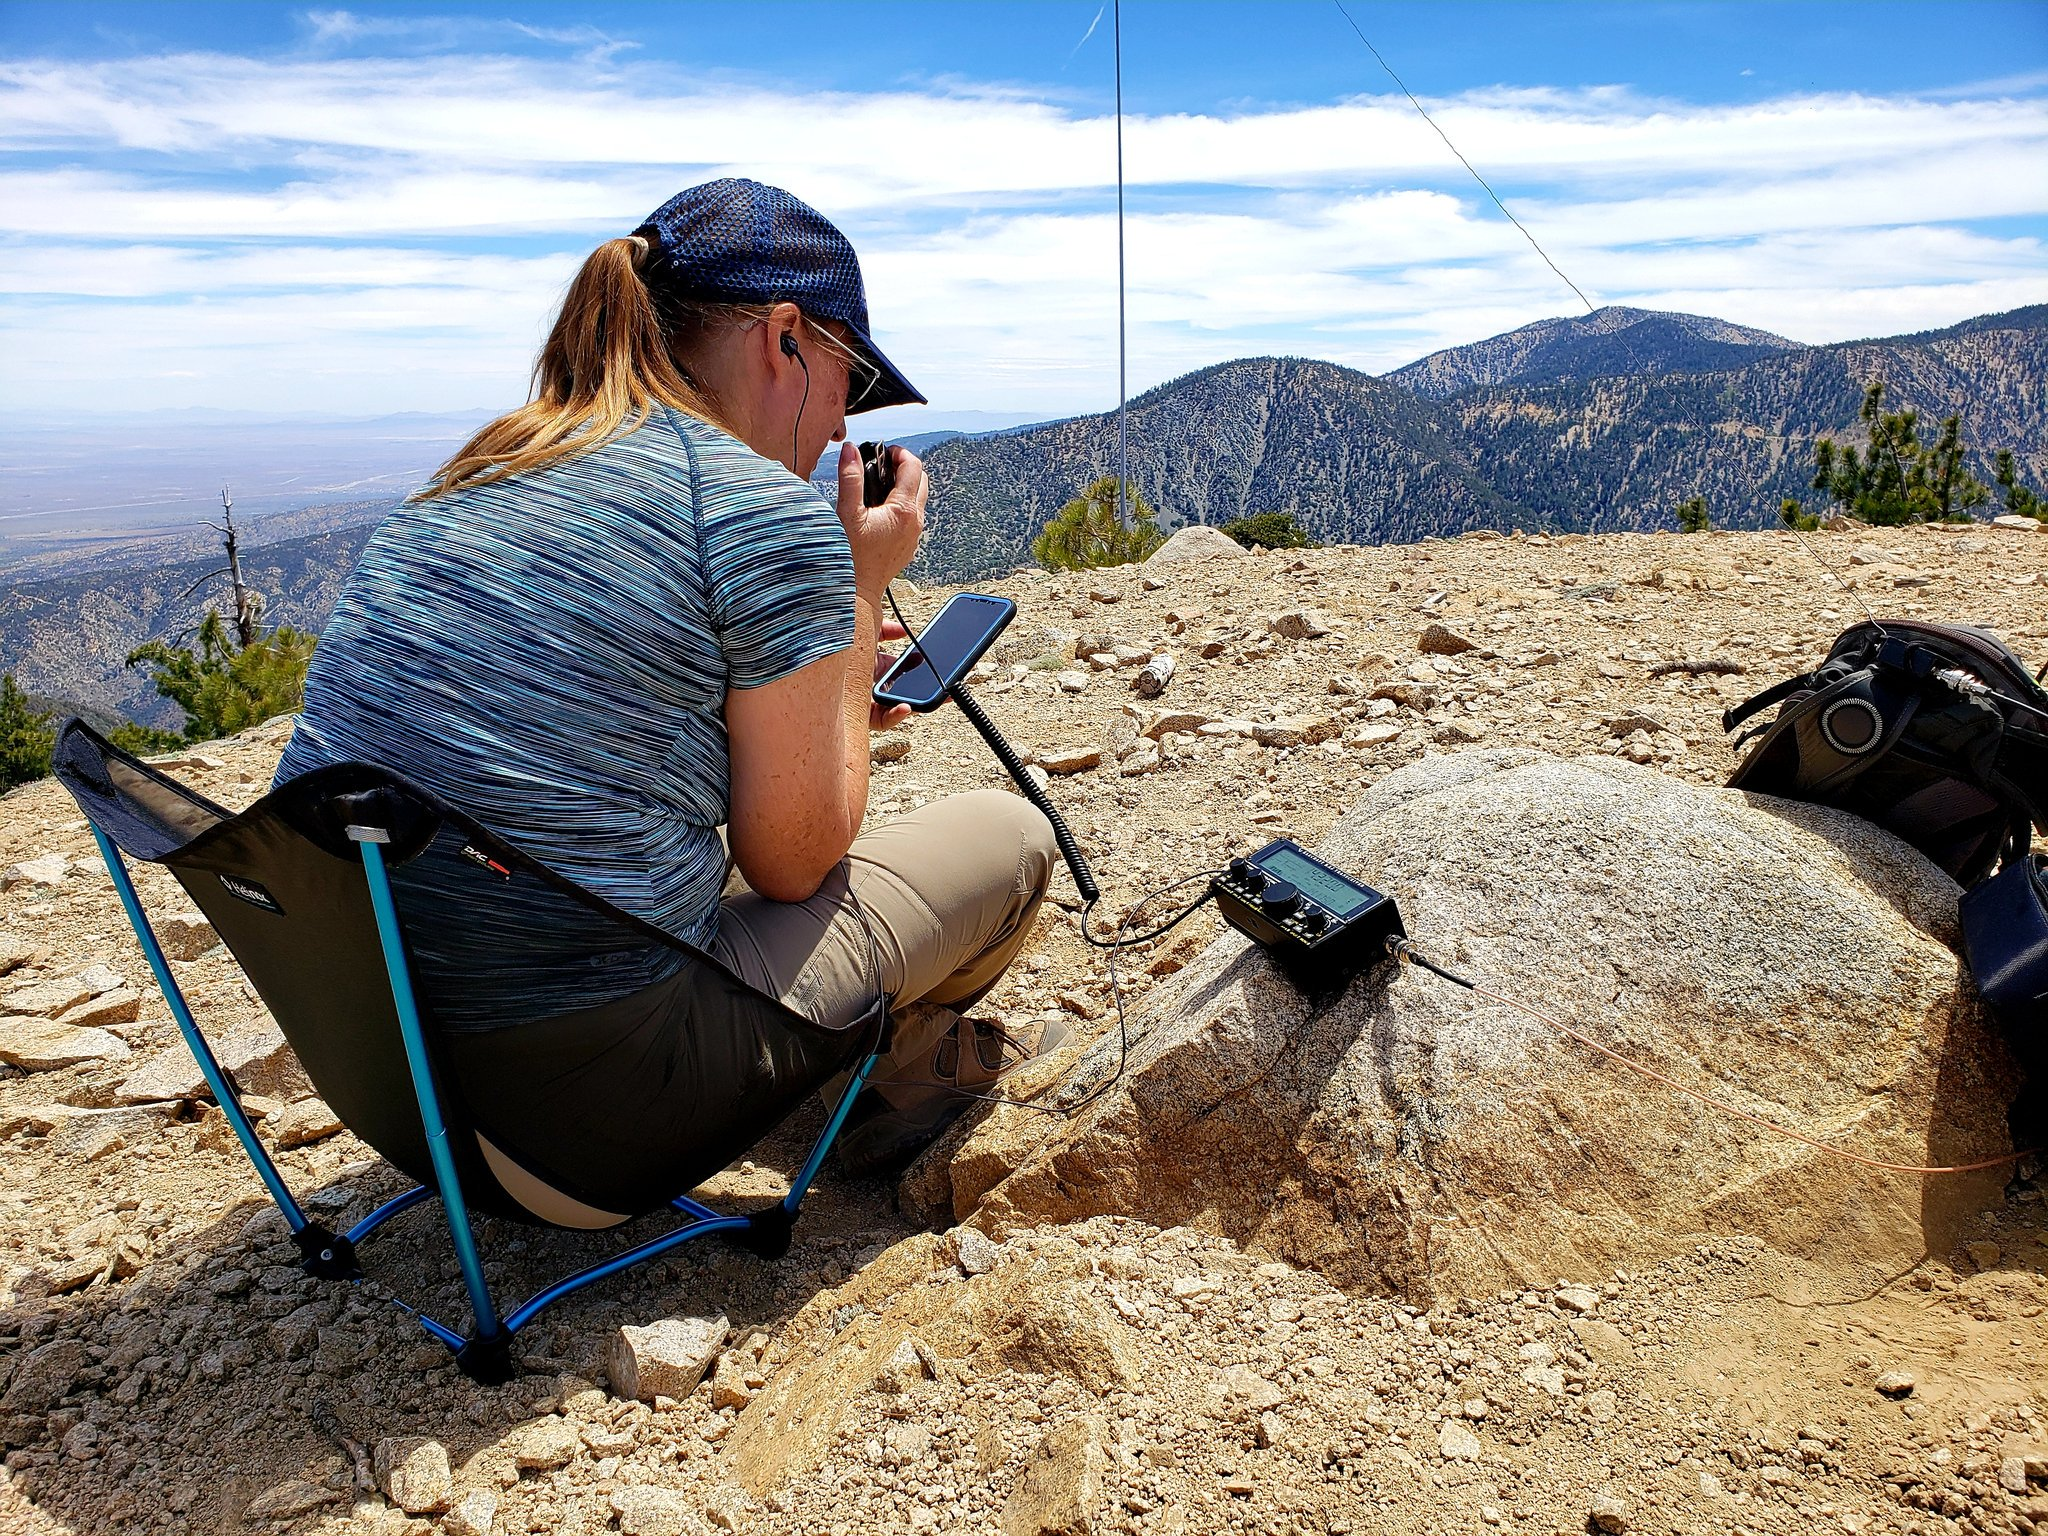 Activated W6/CT-247 today with @N2Zip. My XLY's first #sota activation as a general class. She got 17 qso's all over the USA. Thanks to all the chasers out there that made her activation a lot of fun. #hamradio https://t.co/RSiB5LcS35